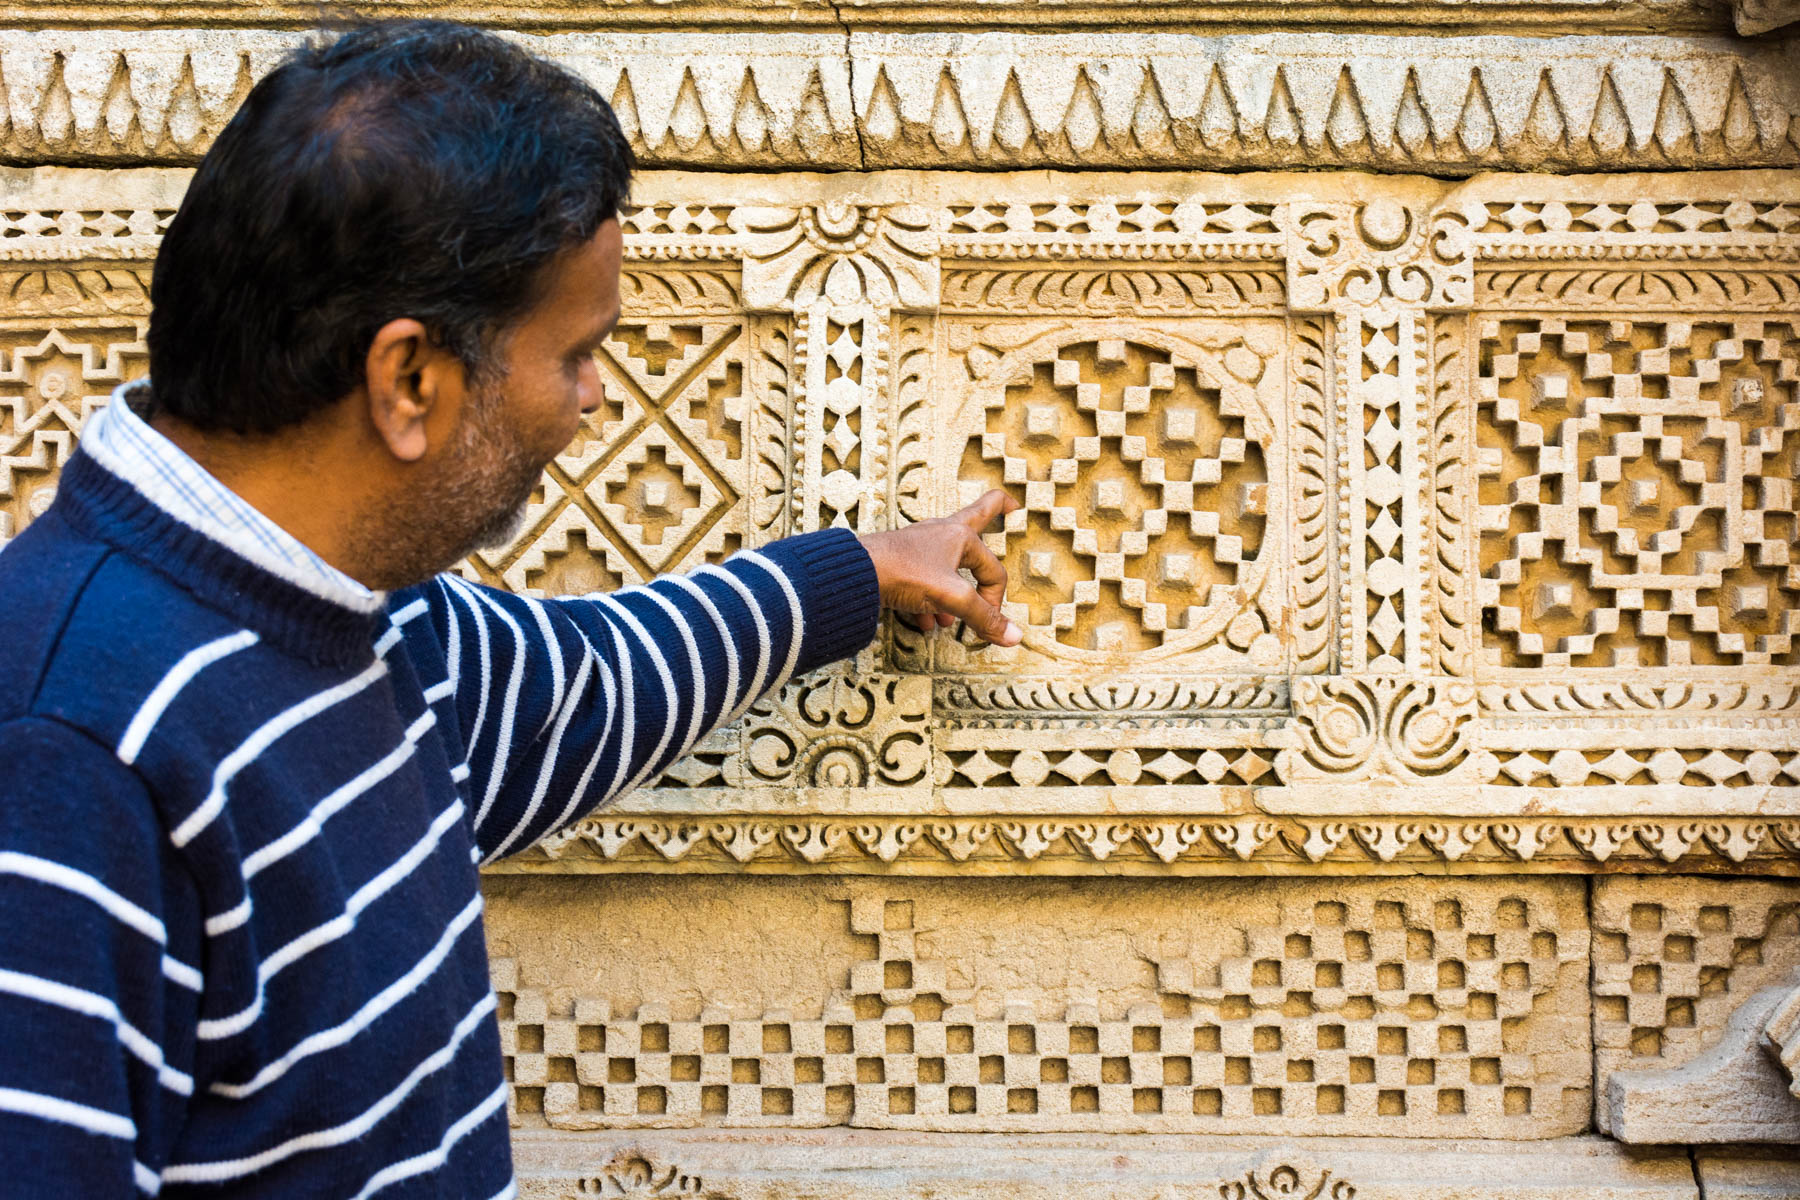 A history of Patan Patola in Gujarat, India - Mr. Soni shows us Patola plates in Rani Ki Vav step well - Lost With Purpose